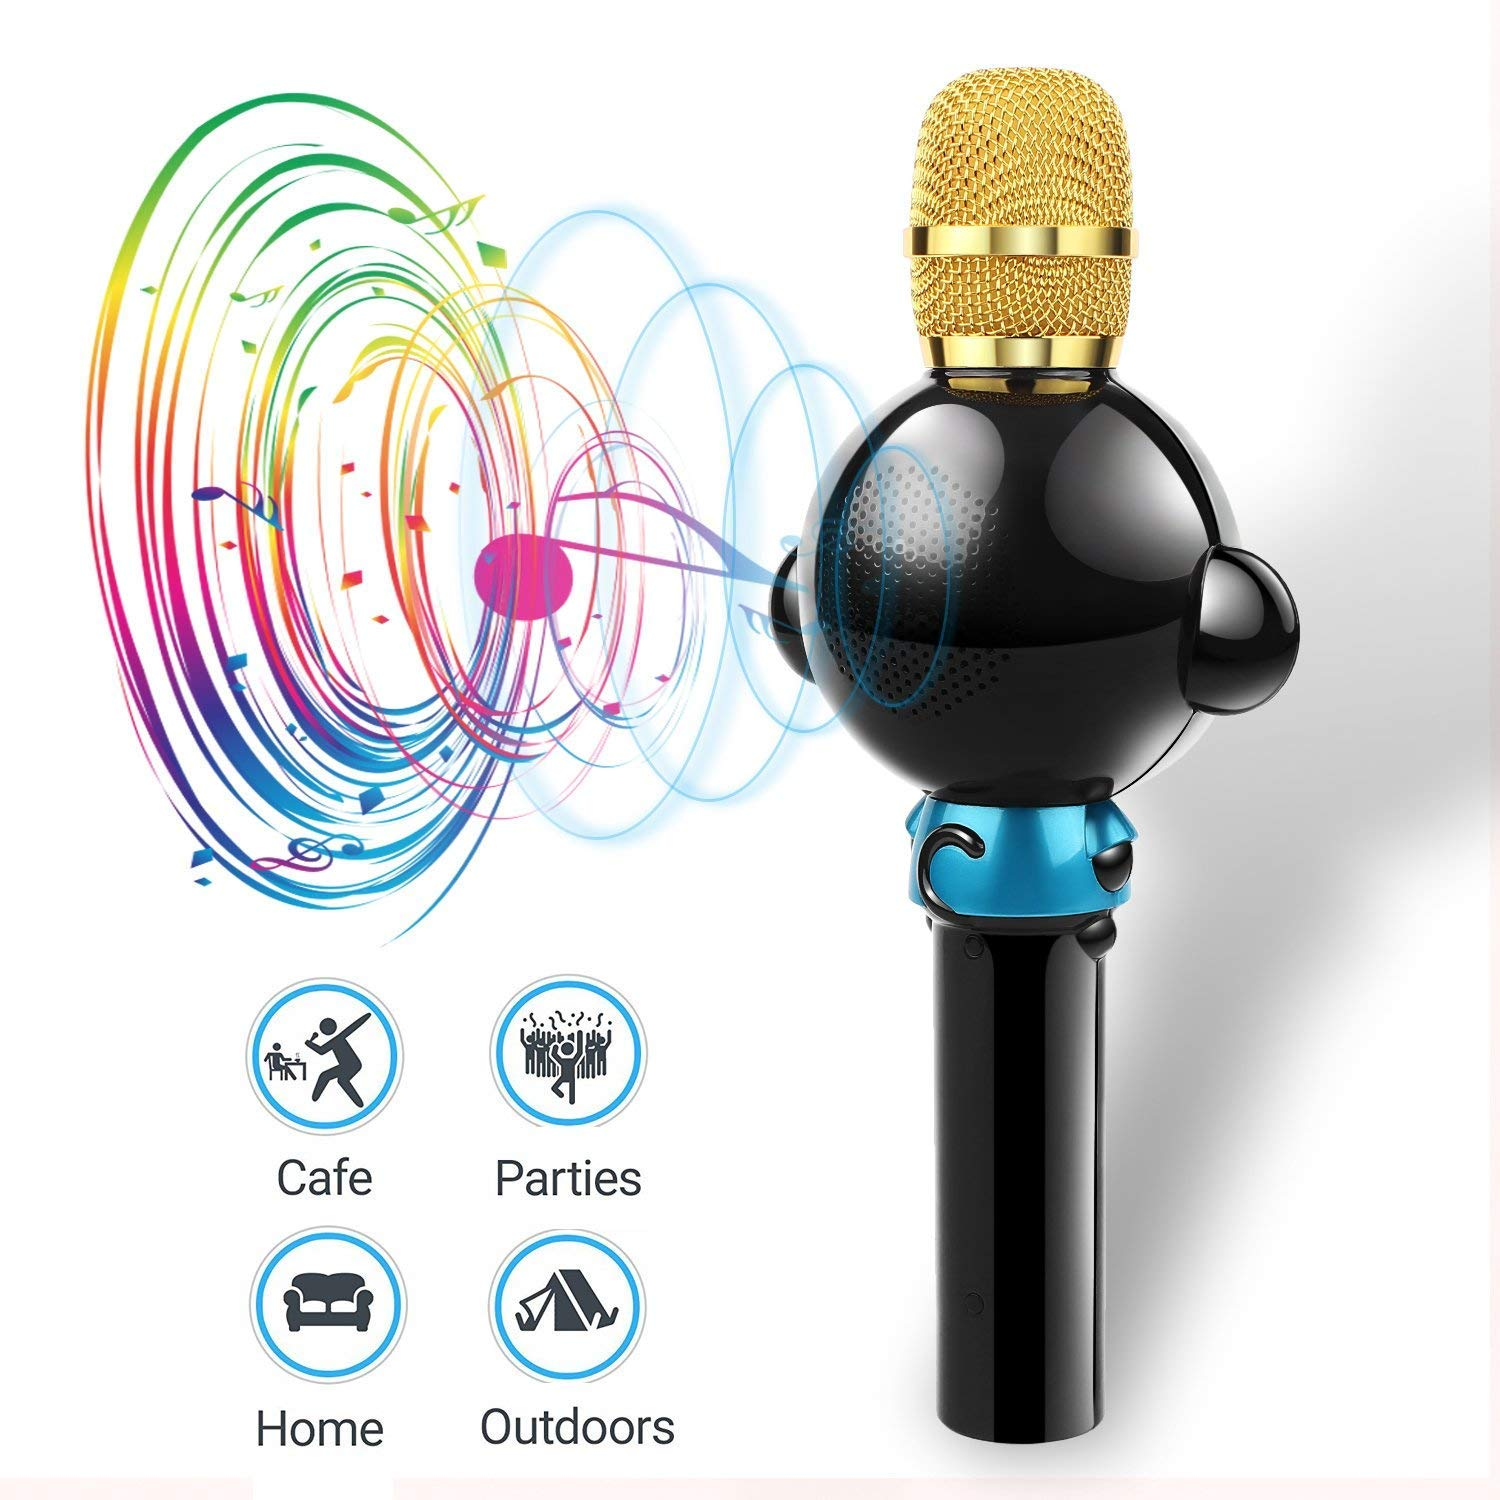 LingHui Kids Microphone Wireless Bluetooth Karaoke Microphone, 3-in-1 Portable Handheld Karaoke Mic Home Party Birthday Speaker Machine for iPhone/Android/iPad/Sony,PC and All Smartphone (Black) by LingHui (Image #6)